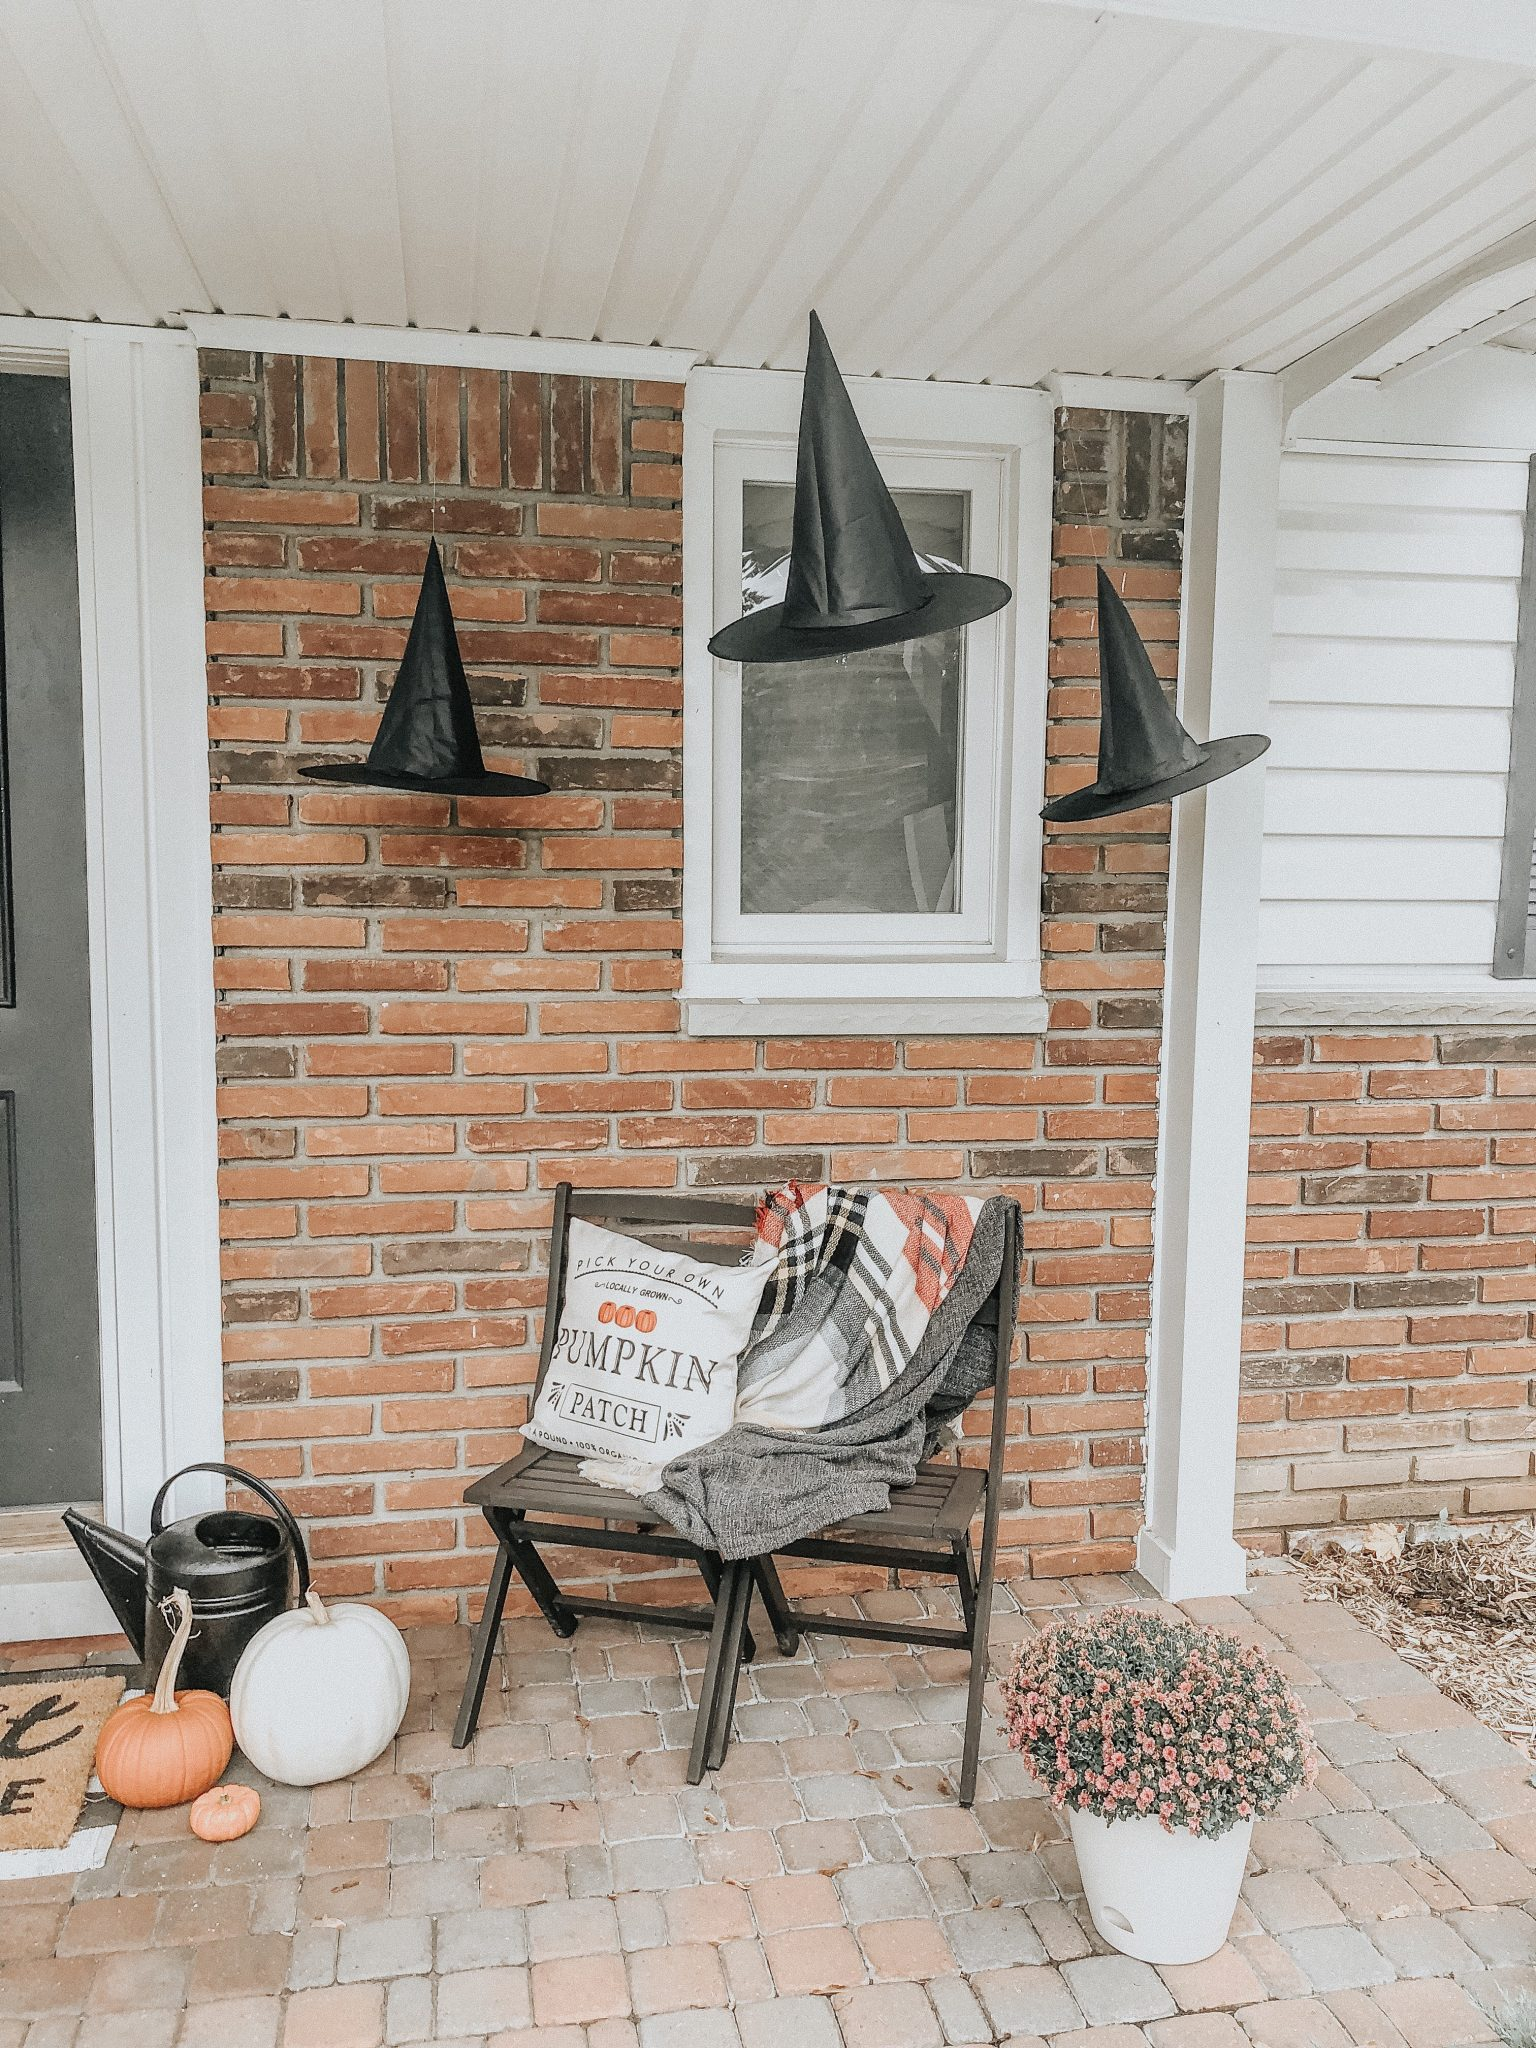 Halloween Decorating Ideas | Daily Splendor Life and Style Blog | Front porch with witch hats #witchhats #floatingwitchhats #halloweendecor #halloweenporch #budgethalloweendecorations